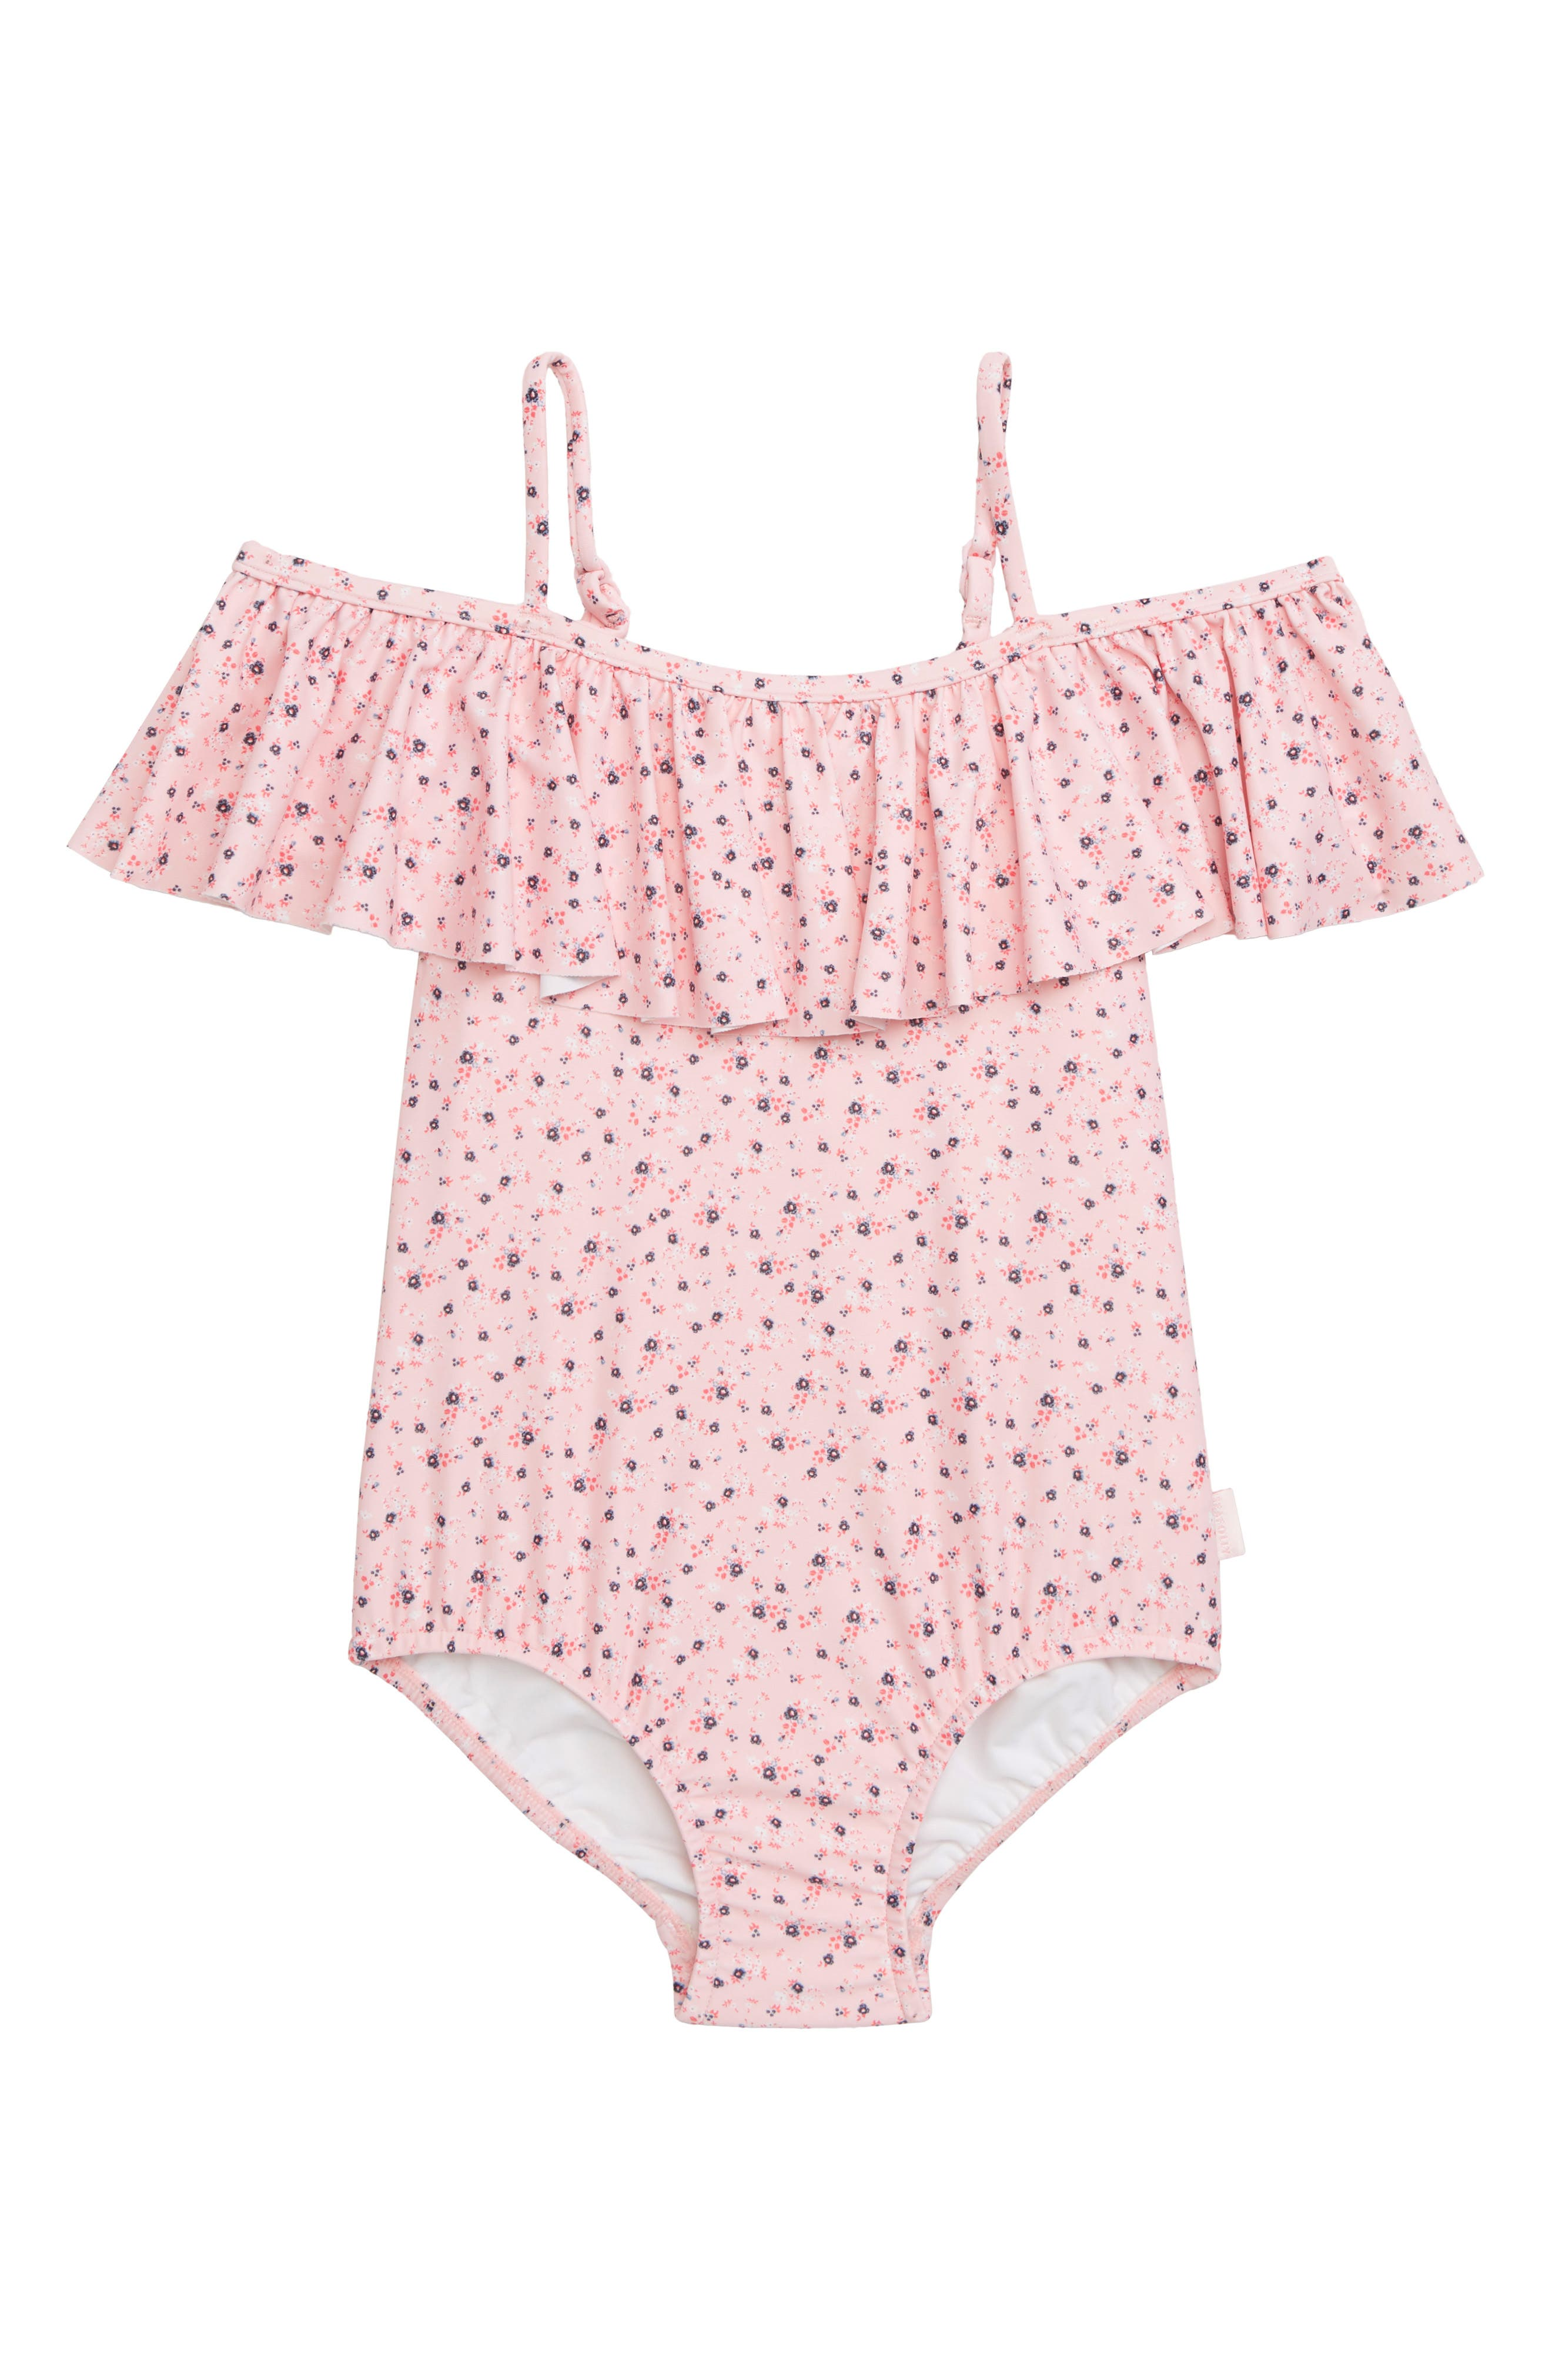 Beach Rose Ruffle One-Piece Swimsuit,                         Main,                         color, BLOSSOM PINK